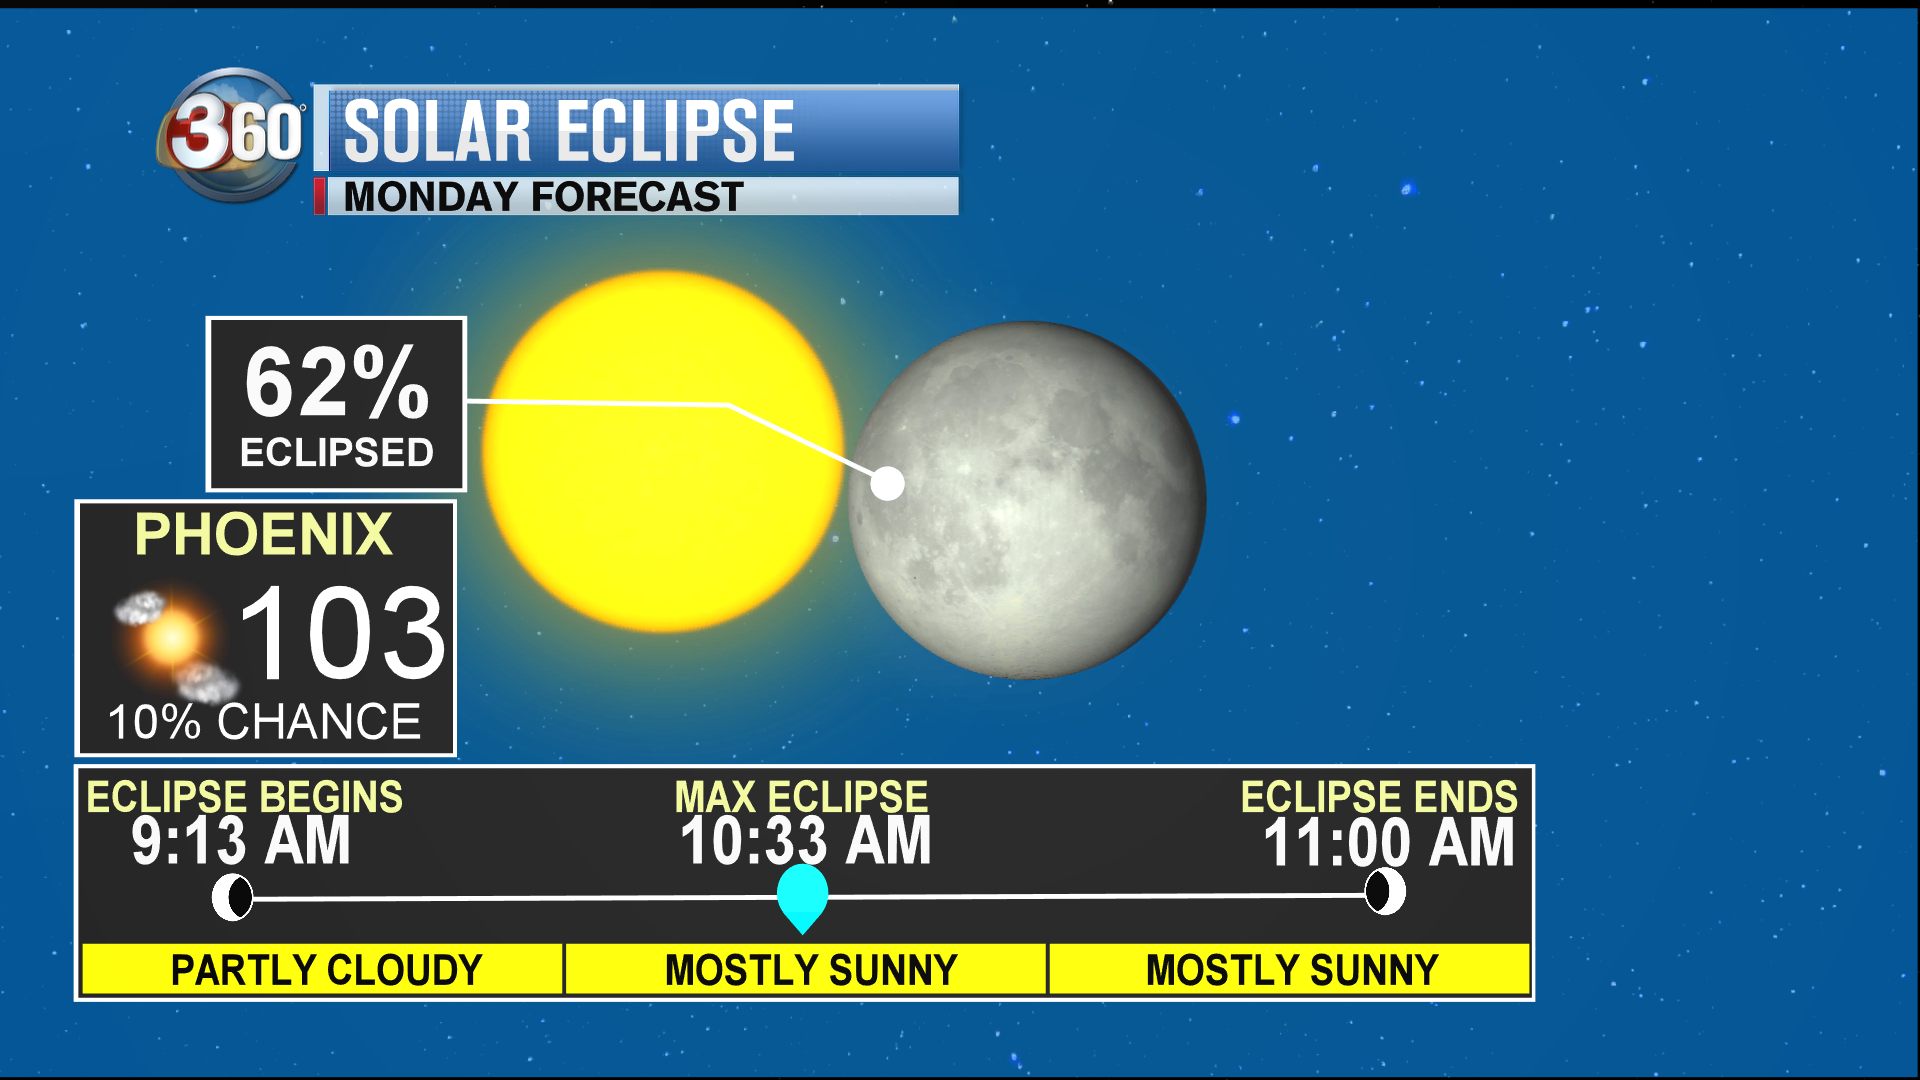 Solar eclipse will be 62% visible from Phoenix at max time of 10:33 a.m.